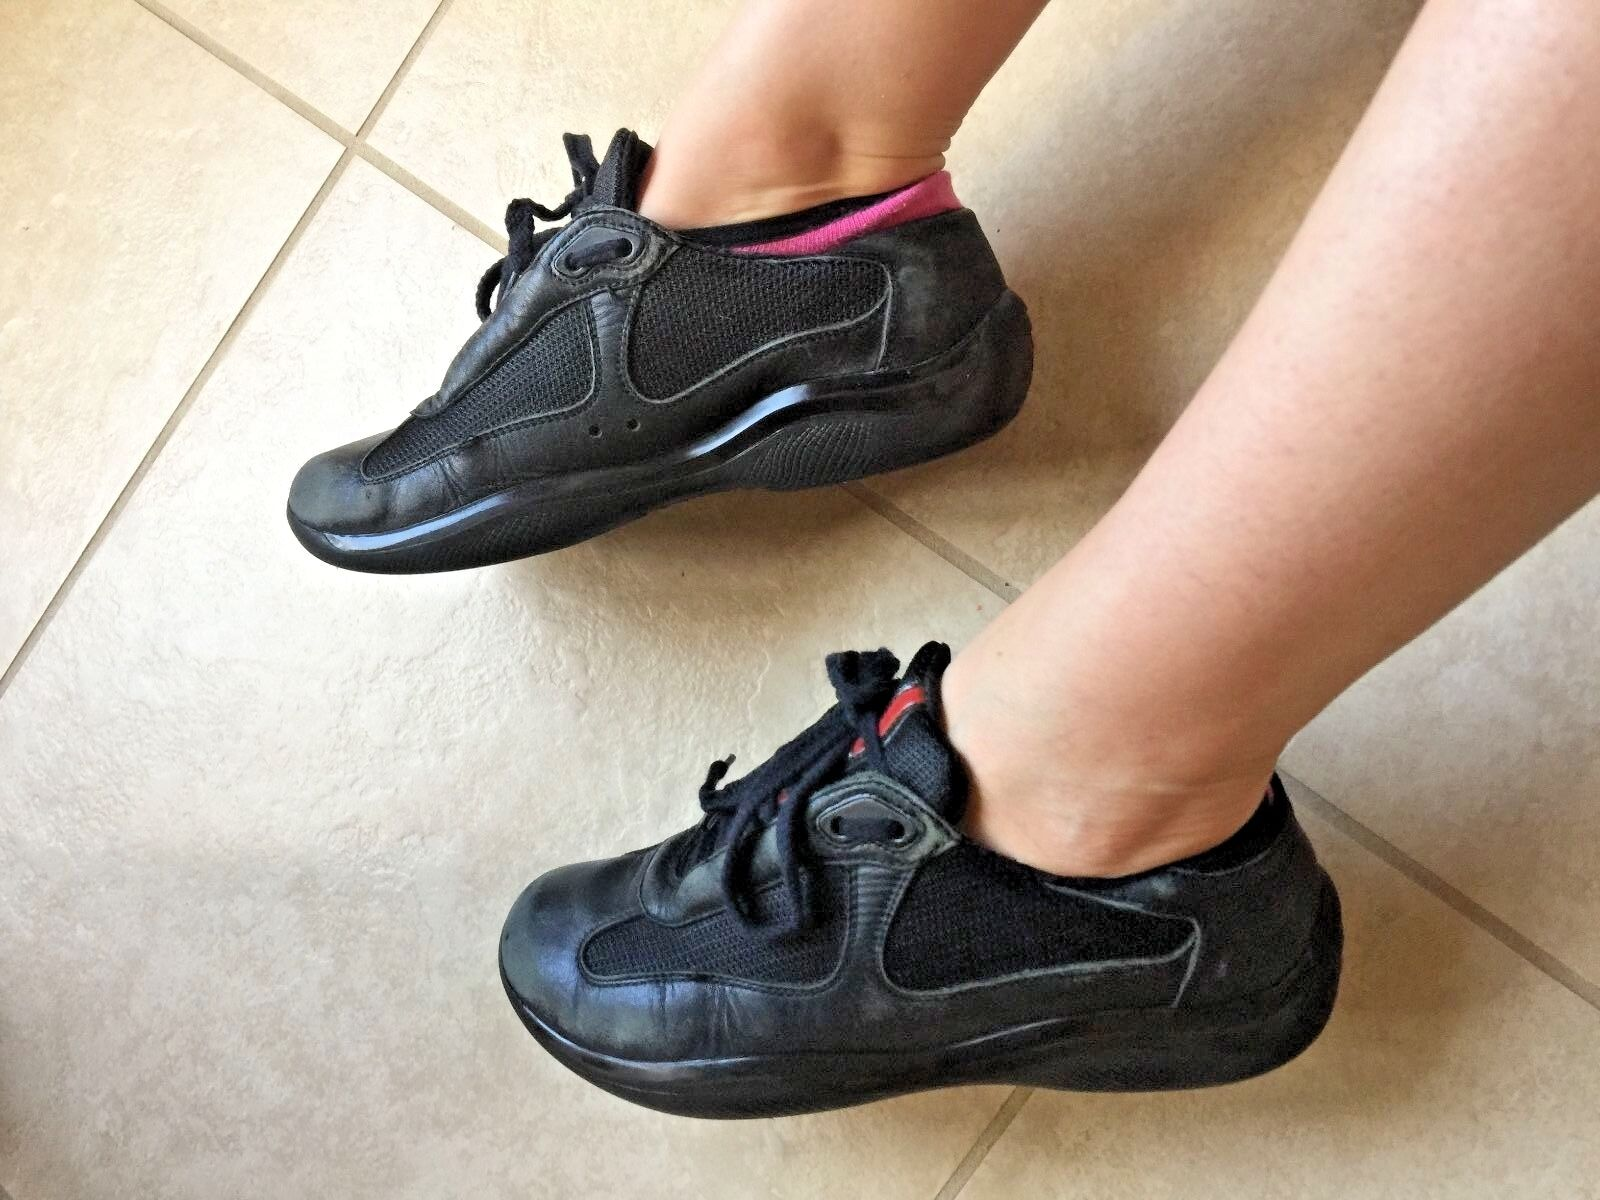 PRADA AMERICAS CUP Women's SUEDE LEATHER SNEAKERS Marked size 37.5 or 7.5